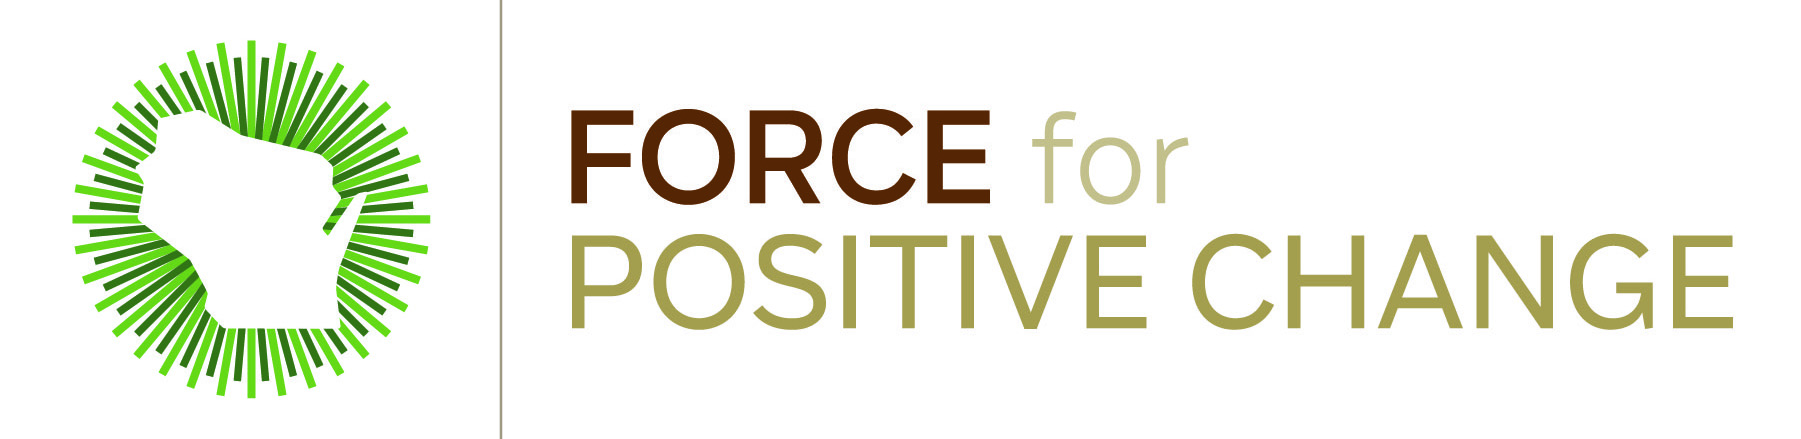 Force for Positive Change